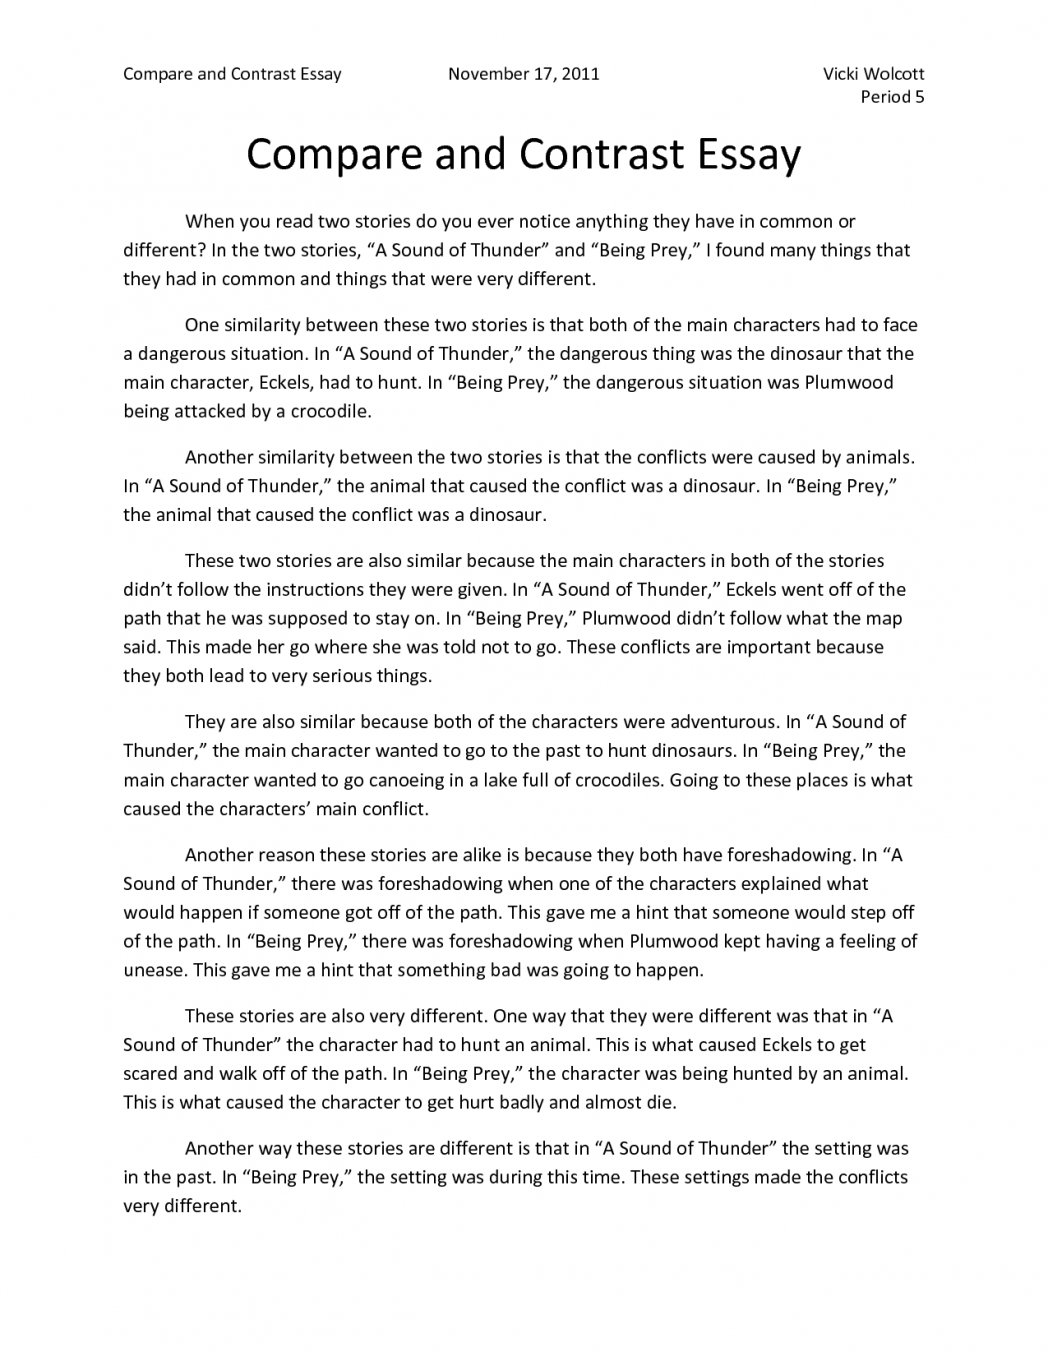 002 Argumentative Essay Topics For Proposal On Immigration Laws Compare And Contrast 1048x1356 Stupendous Full